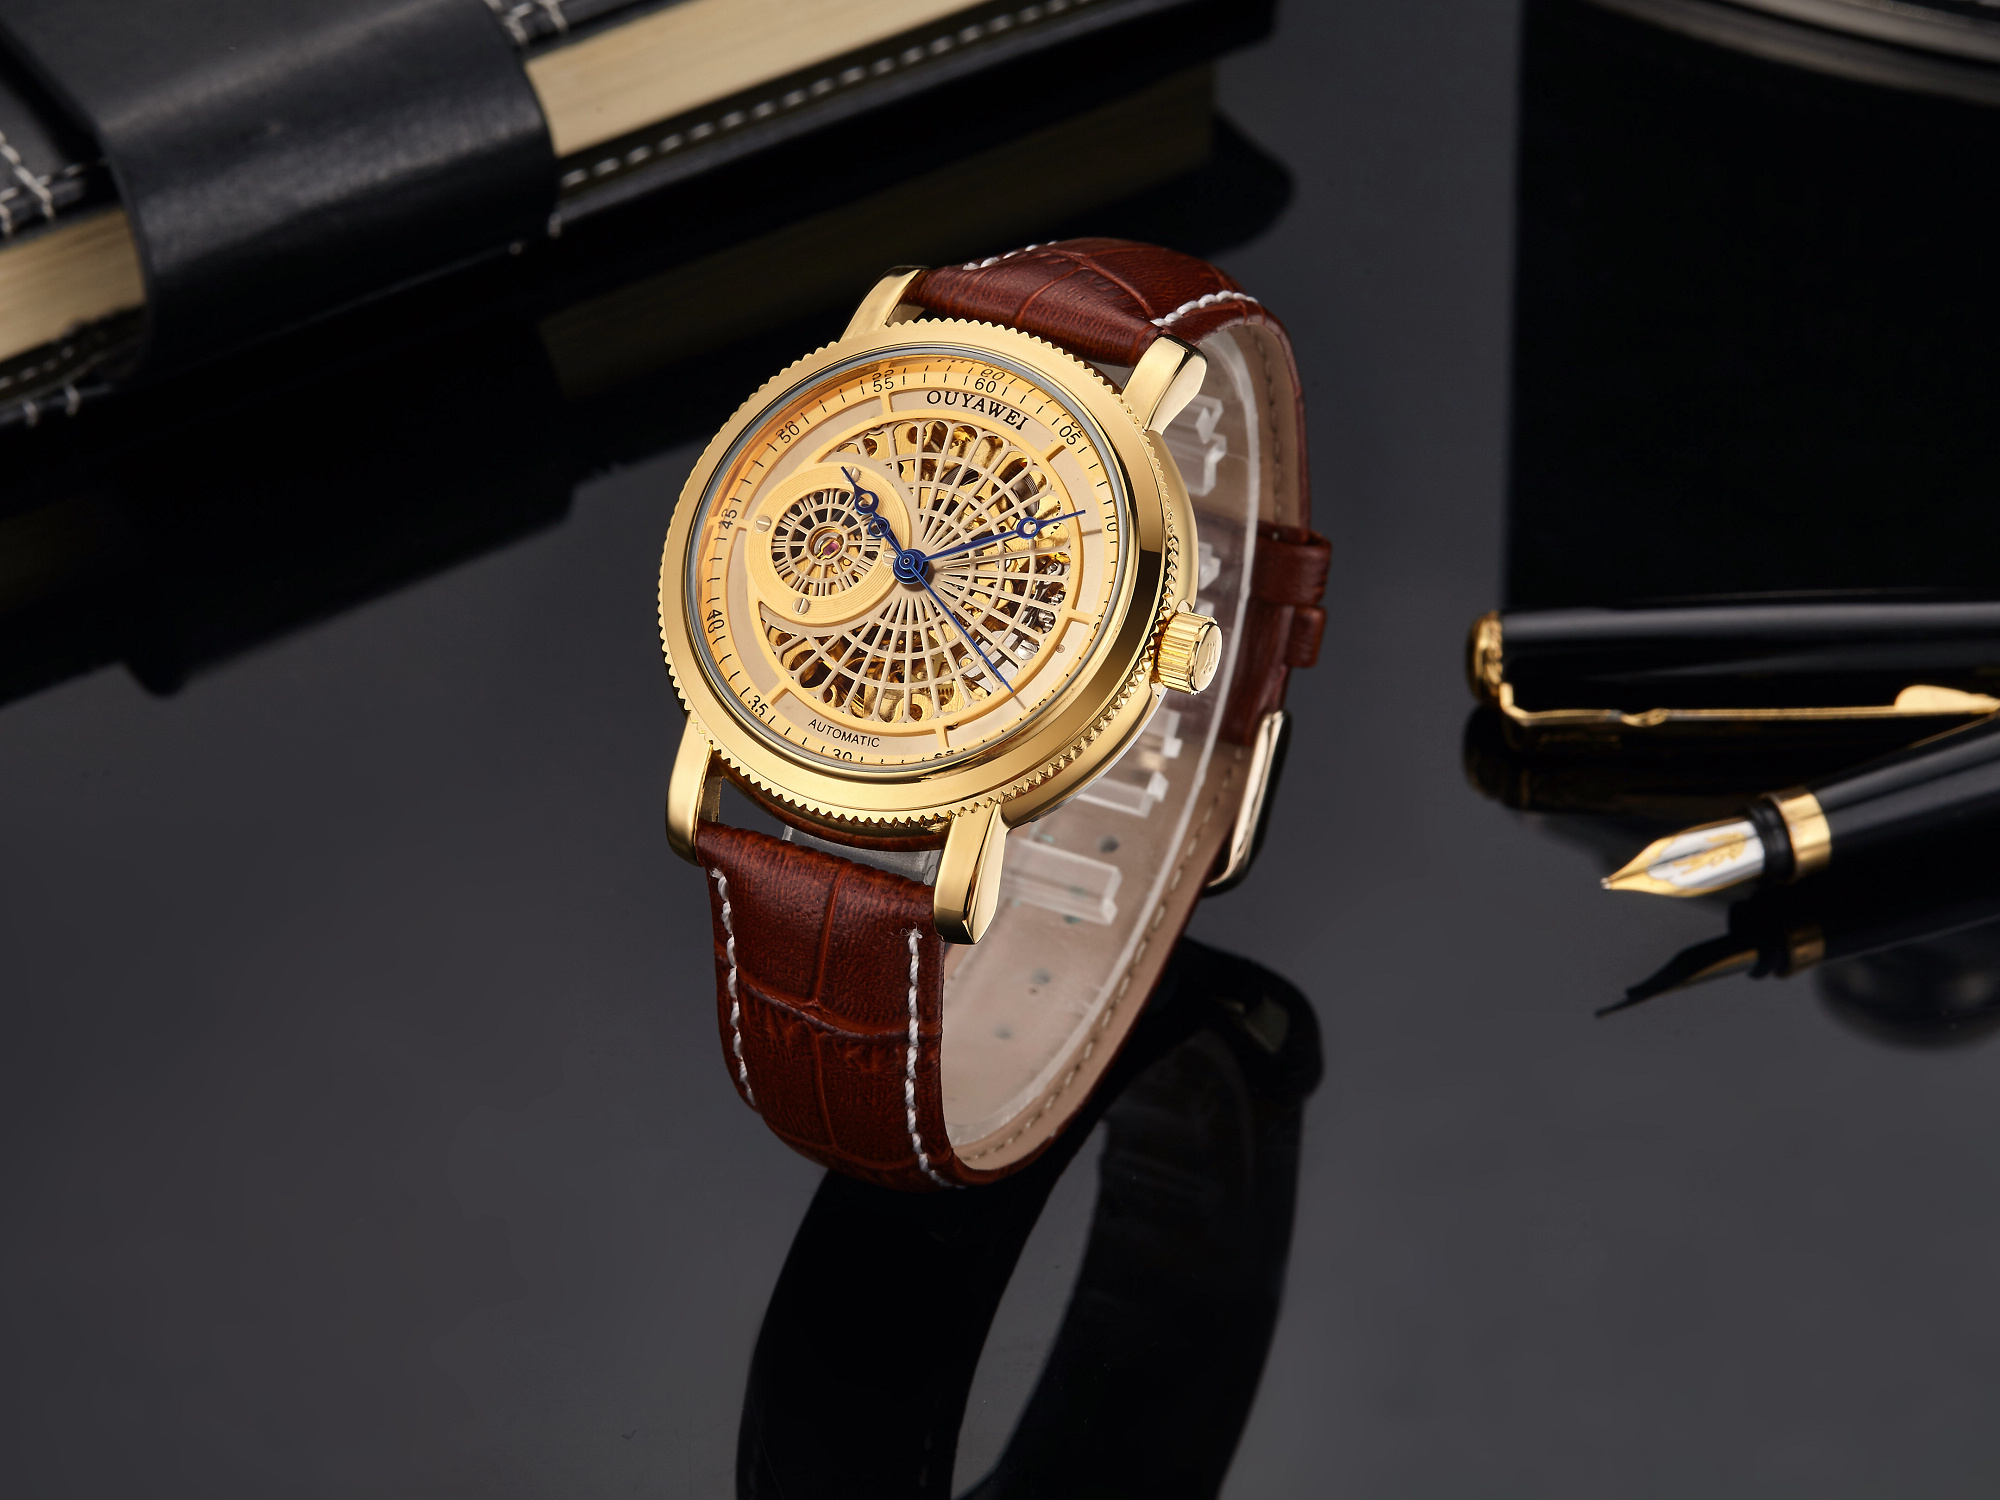 H7a600a8b84f74ed1bfe8964e694f7720K Mechanical Gold Watch Luxury Brand Self-winding